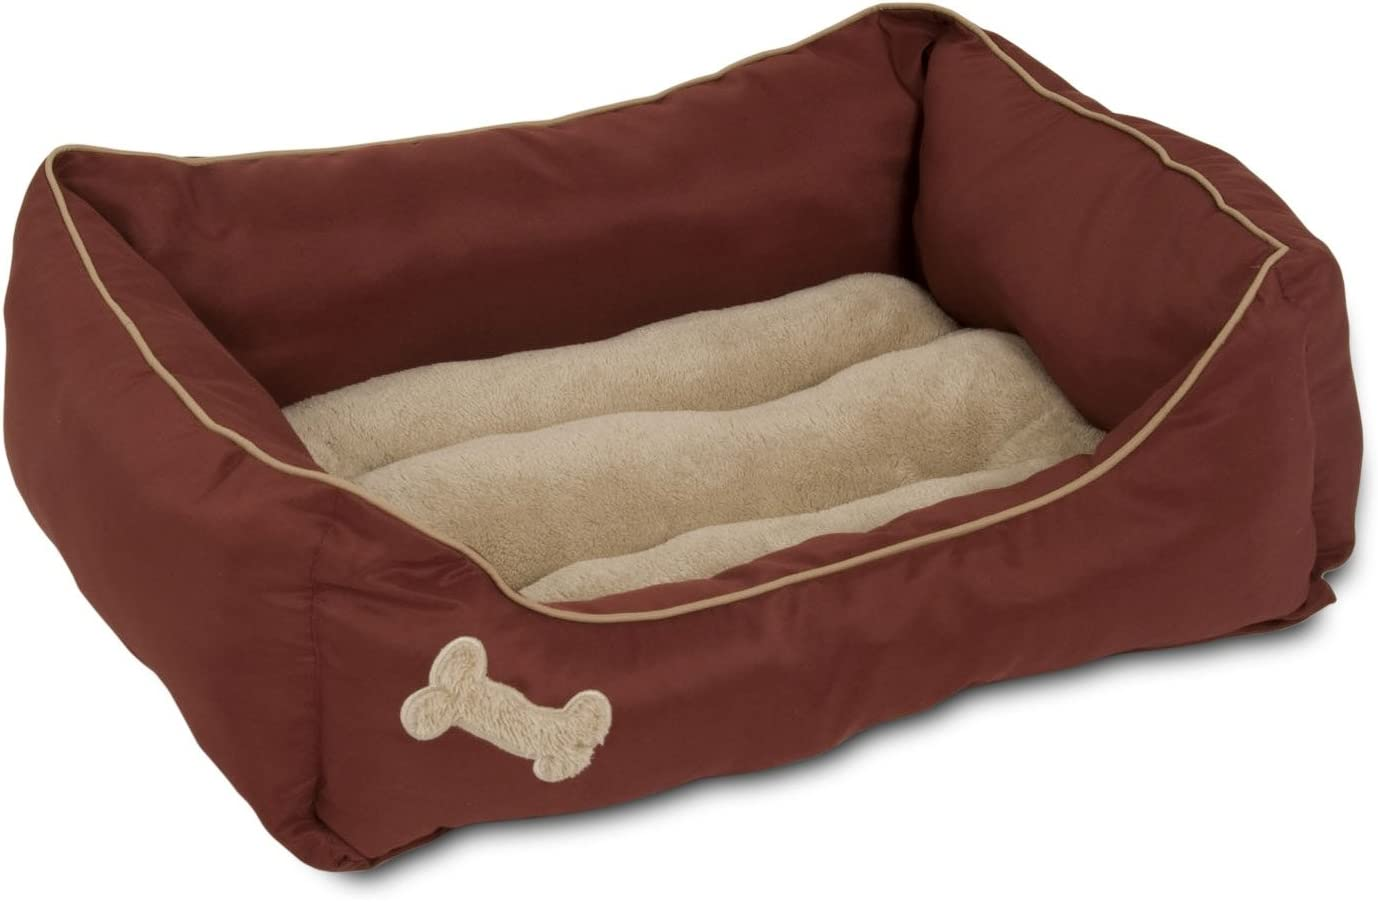 Petmate Rectangular Pet Lounger, 21-Inch by 25-Inch, Burnished Red